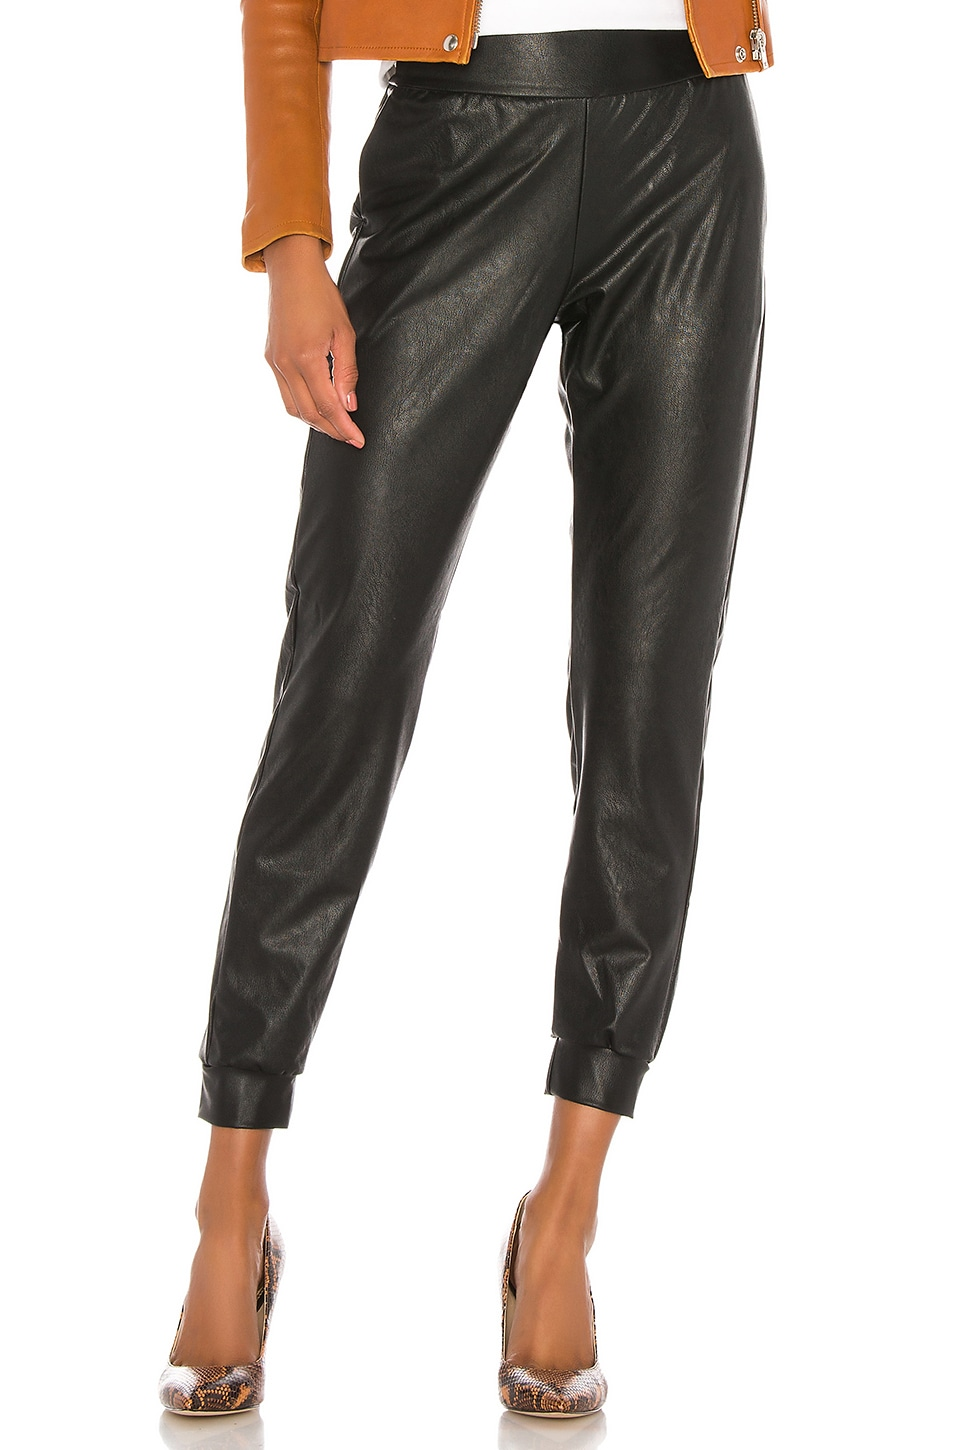 Faux Leather Jogger             Commando                                                                                                       CA$ 181.99 10